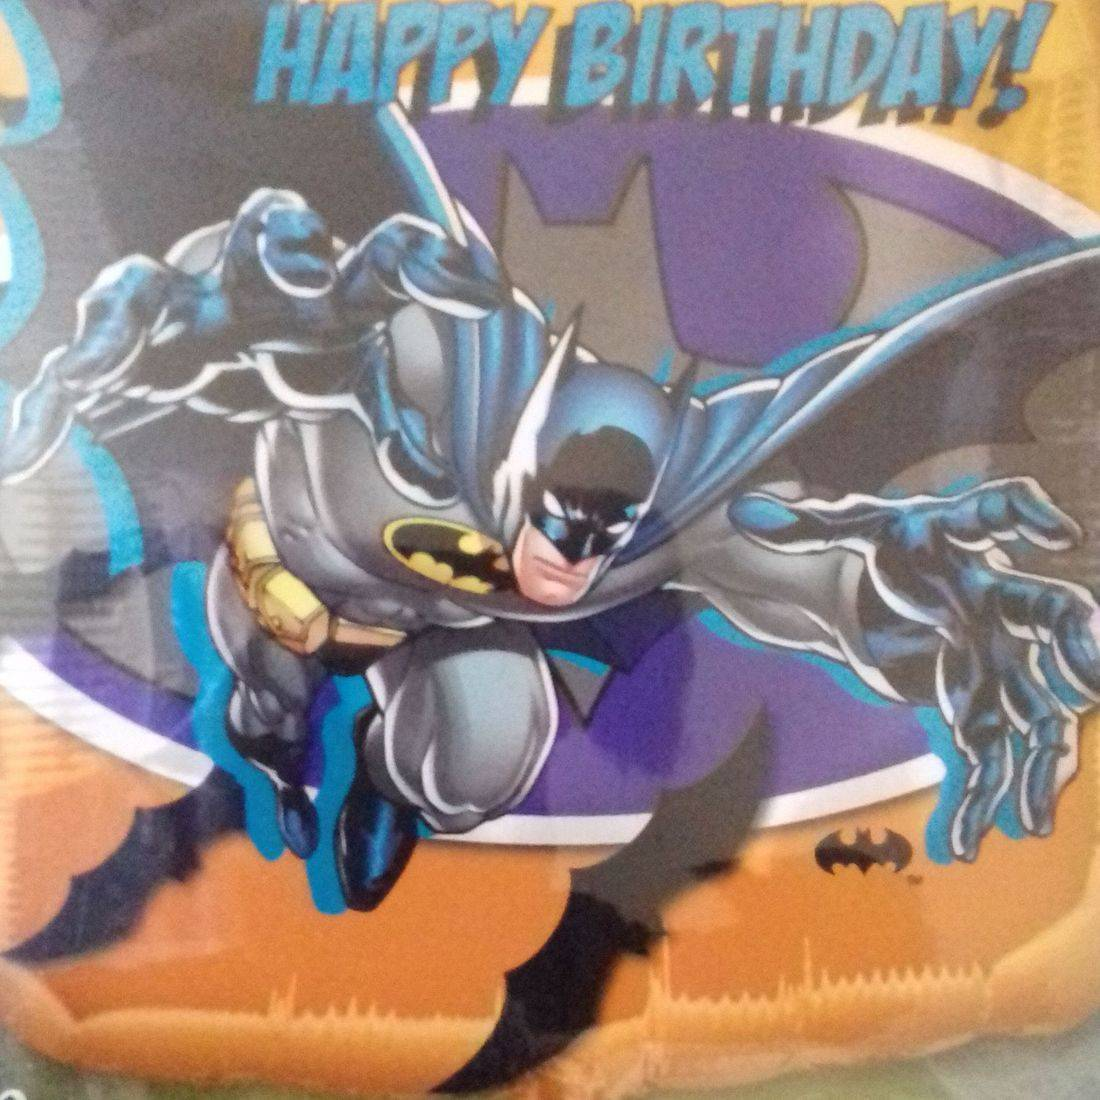 HAPPY BIRTHDAY BATMAN